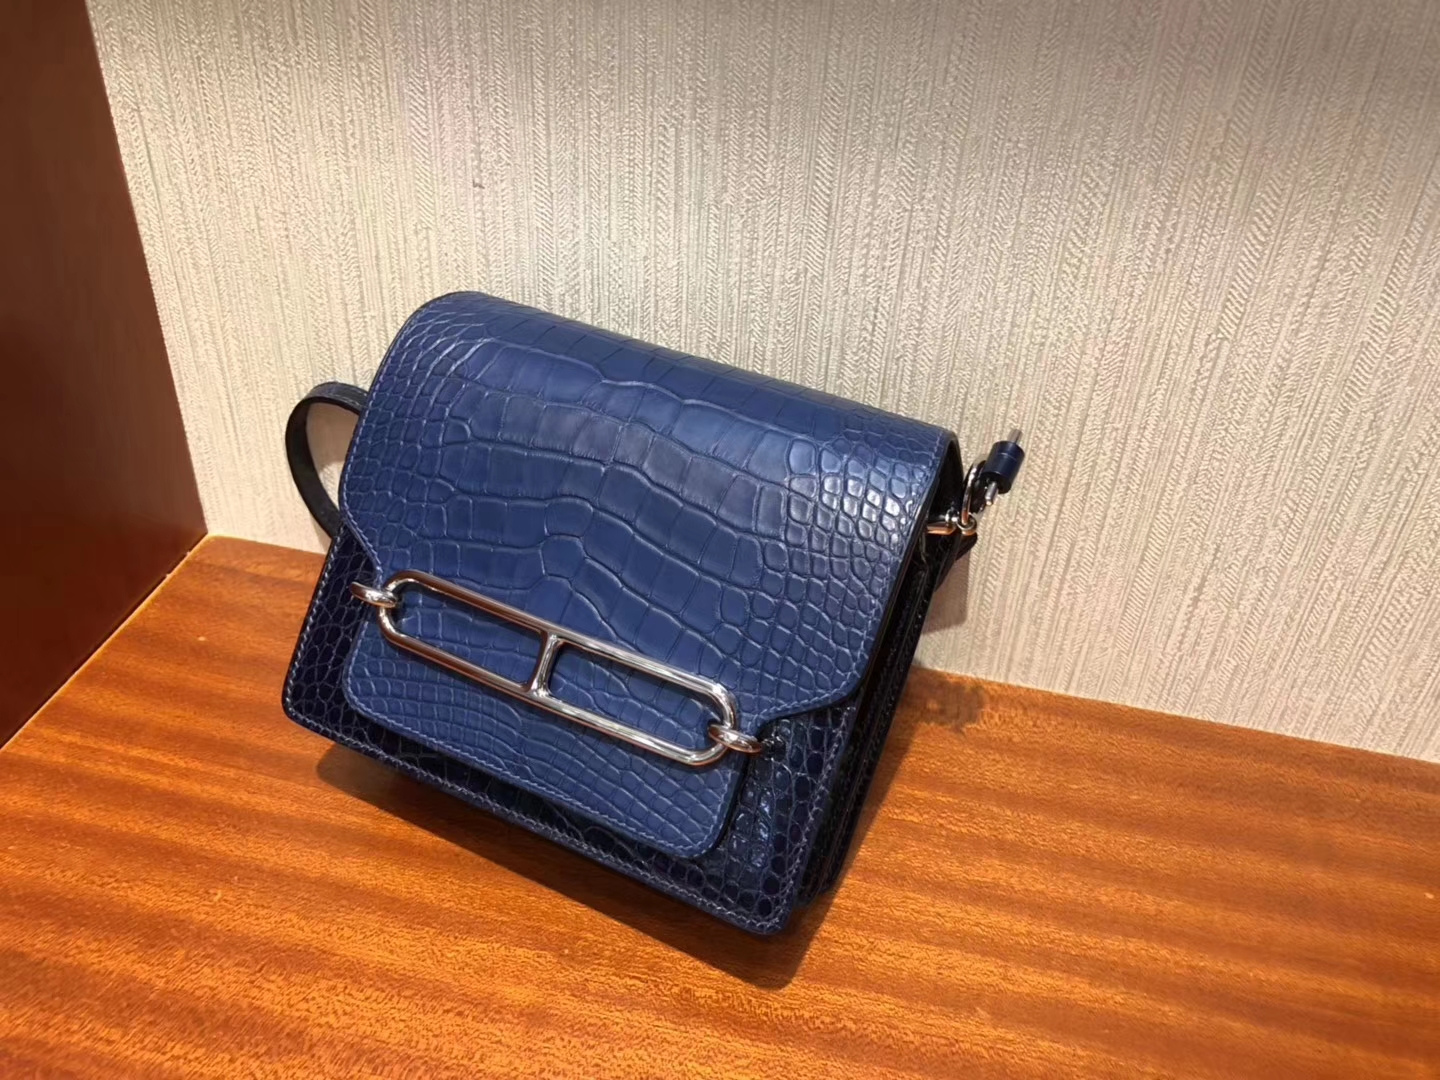 Fashion Hermes Blue Malta/Blue Saphir Crocodile Leather Roulis Bag18CM Silver Hardware